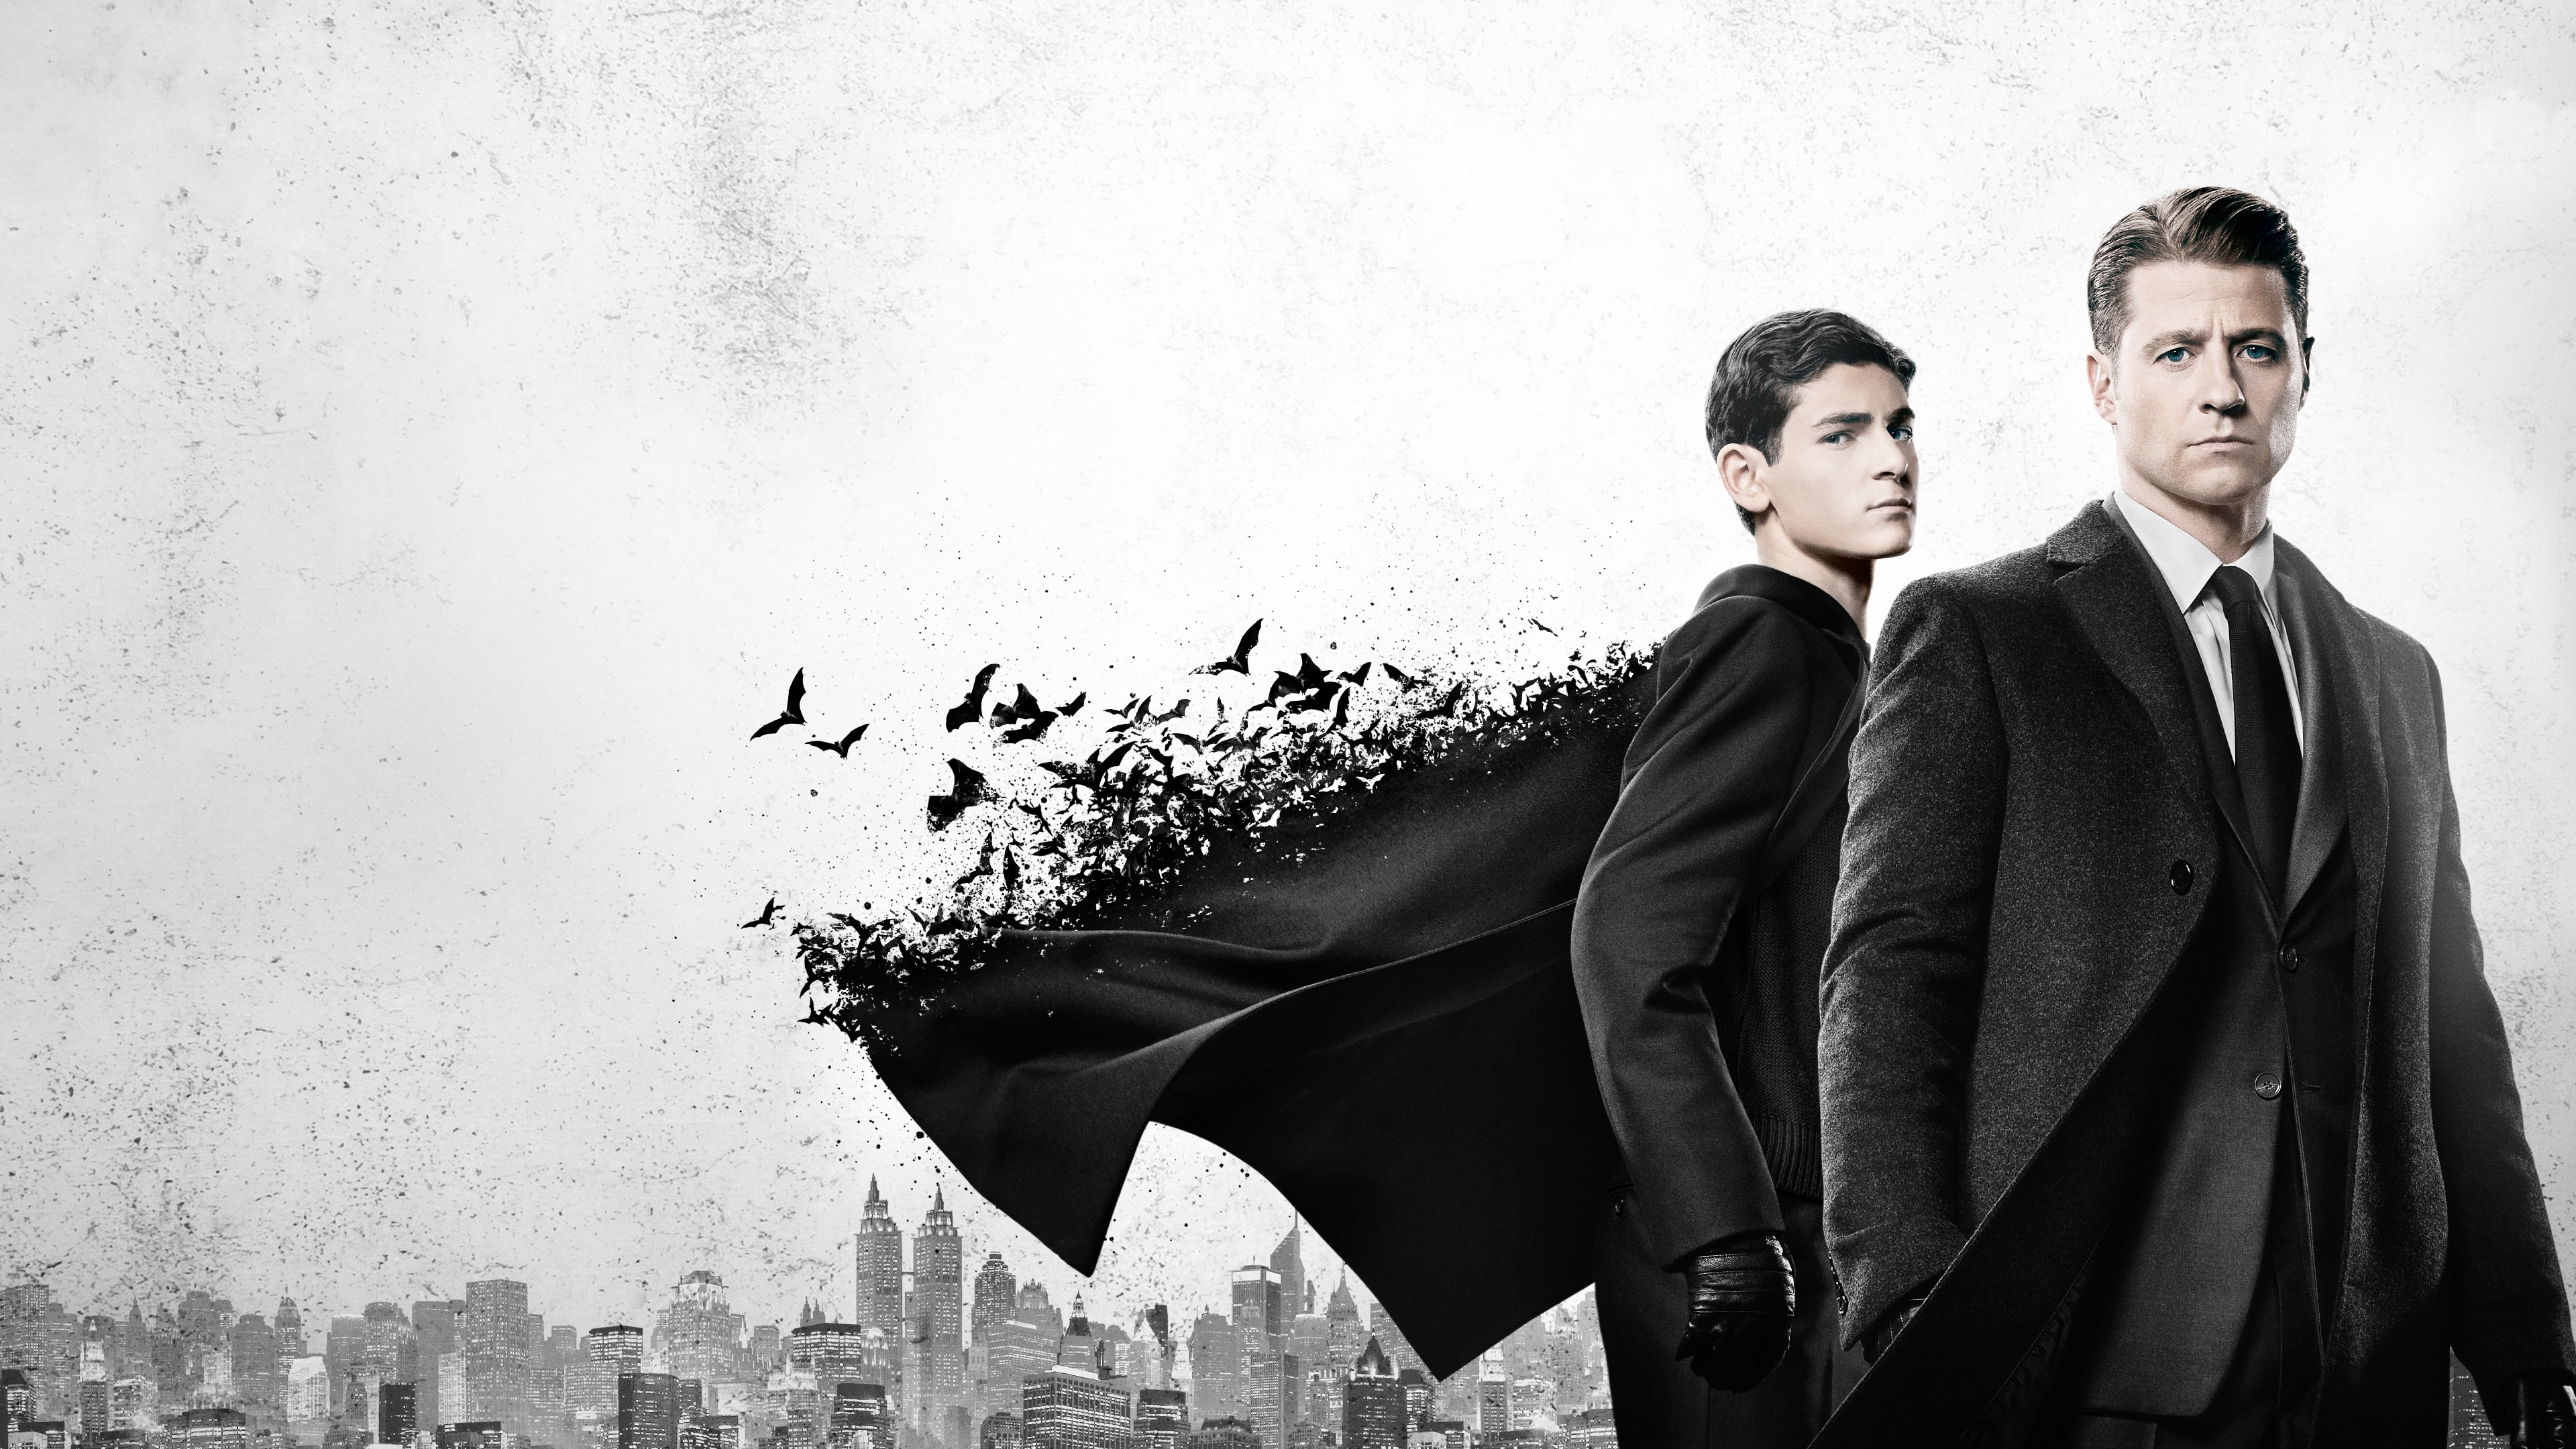 Pretentious Watch No Online National Geographic Watch No Online National Gotham Season 2 Torrentz2 Gotham Season 2 Torrentcouch houzz-02 Gotham Season 2 Torrent